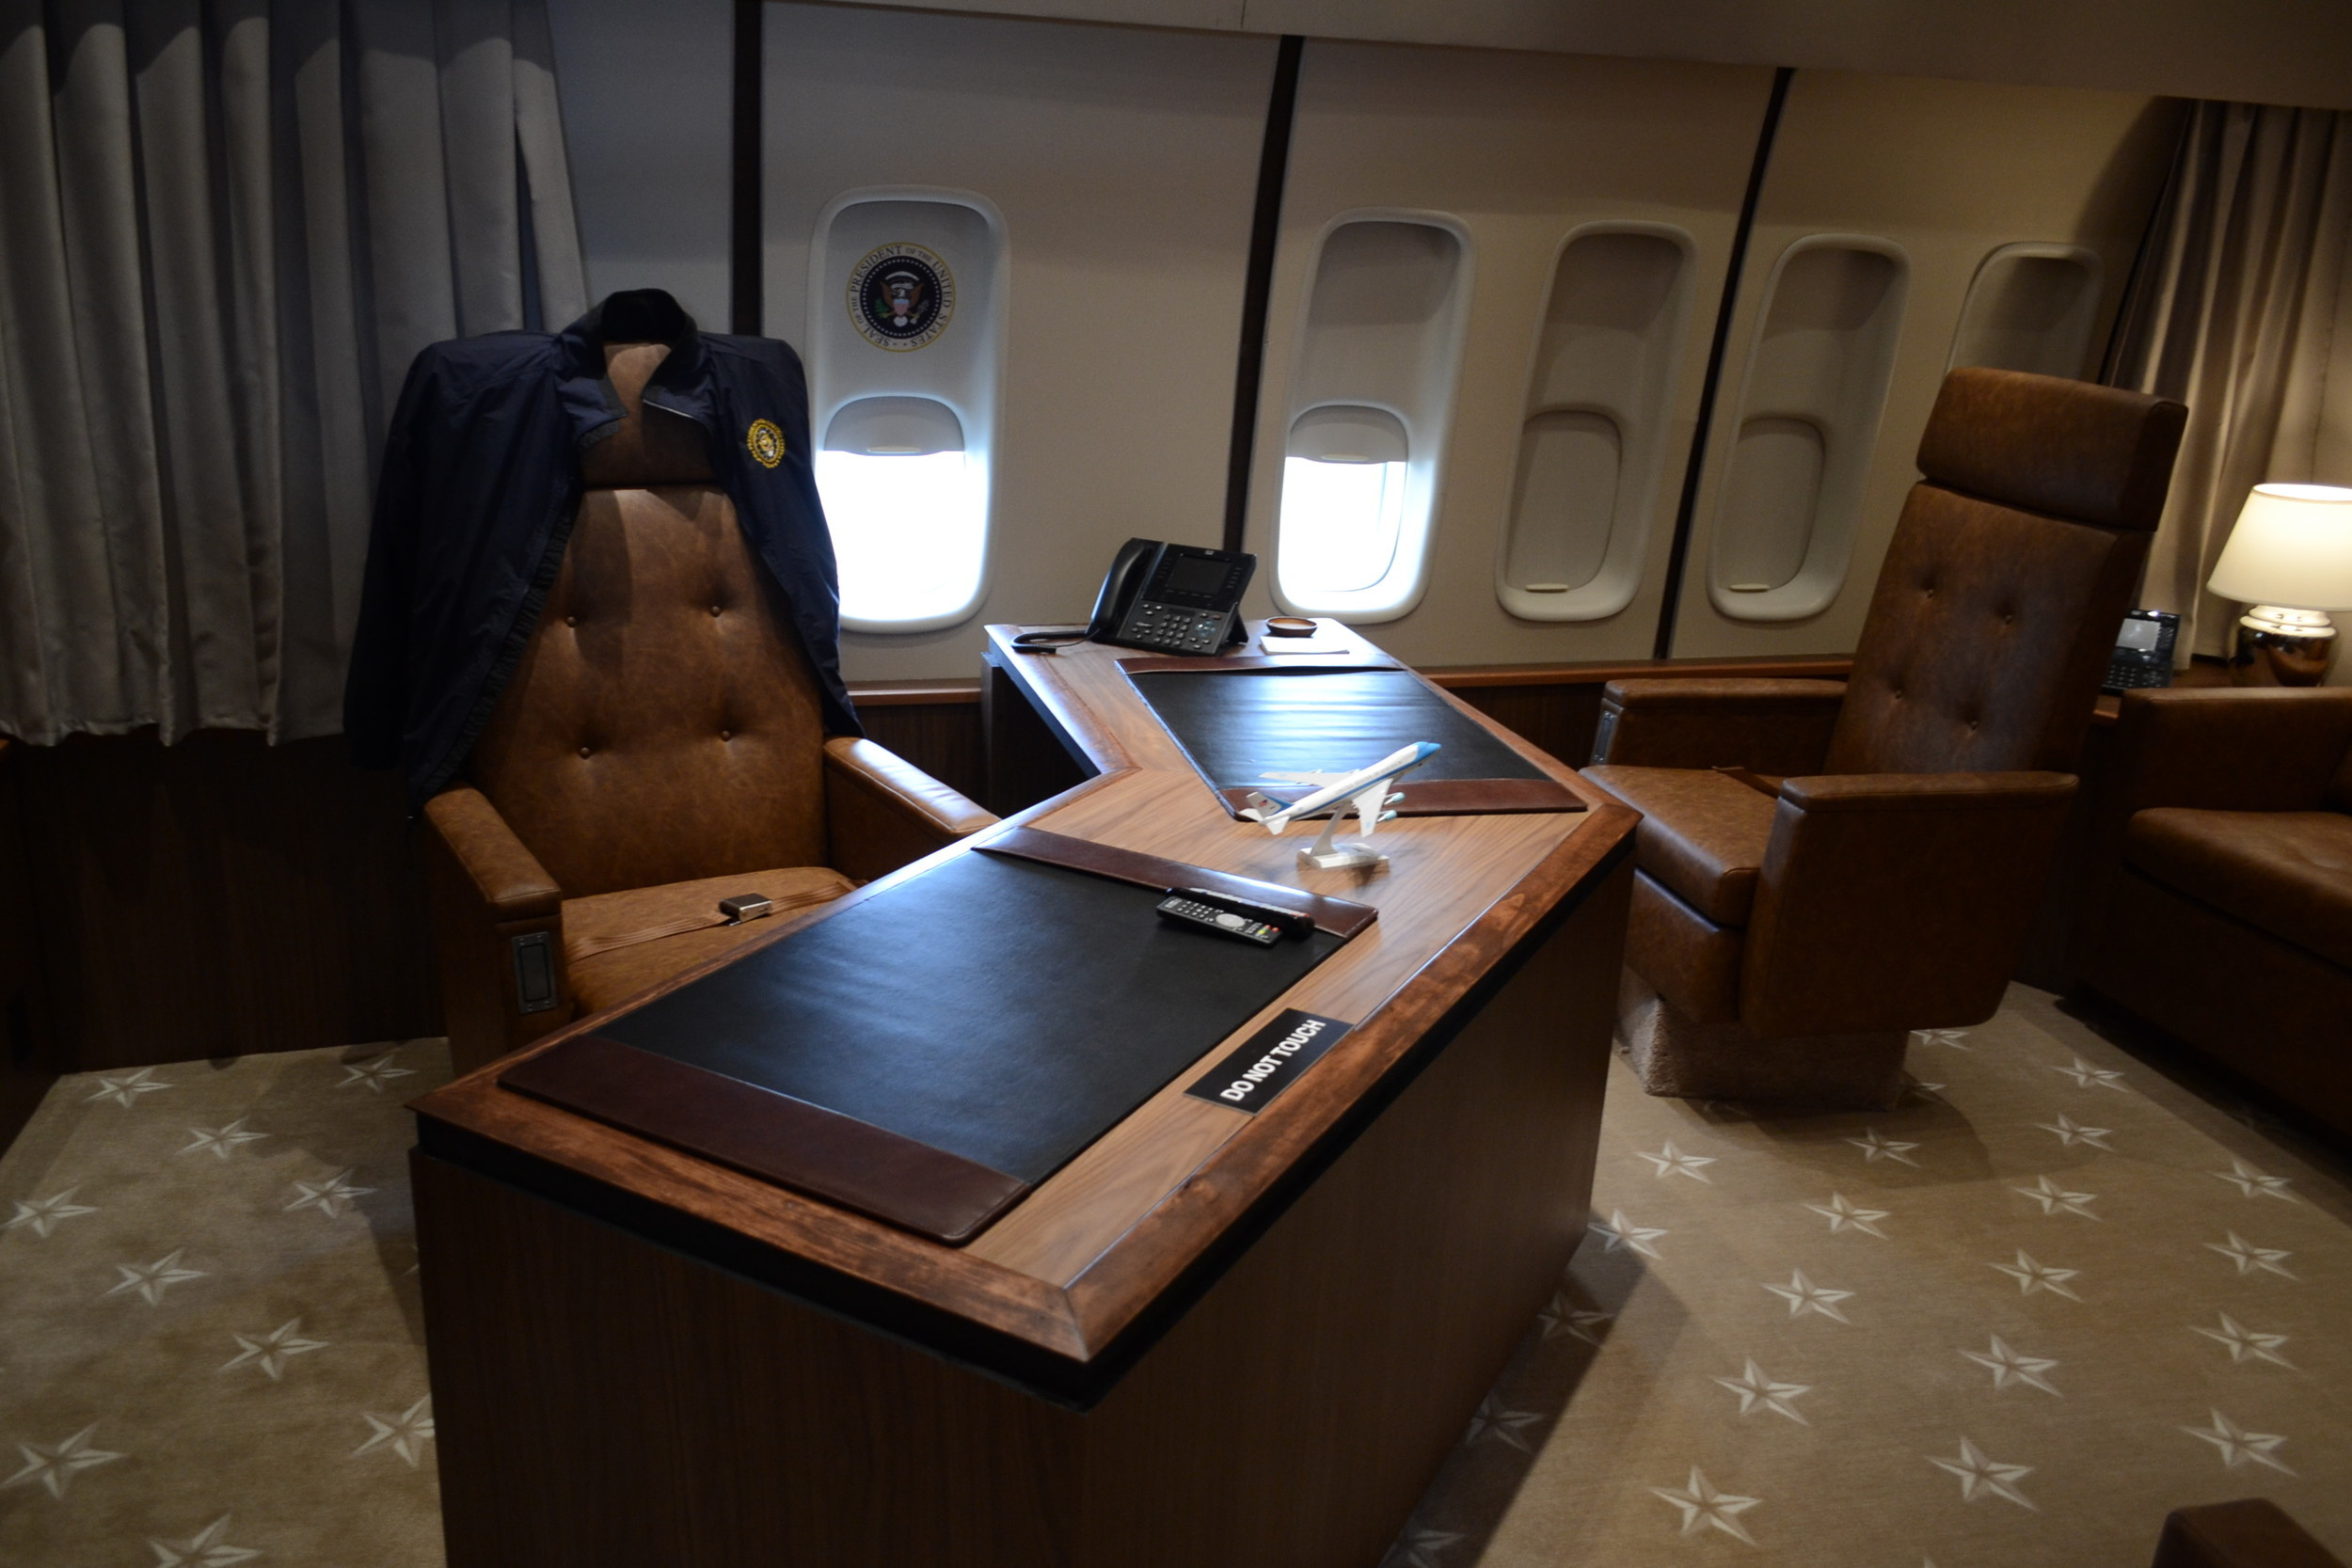 The Replica Air Force One Jet Includes Exact Recreations Of The Rooms Inside  The Presidentu0027s Plane